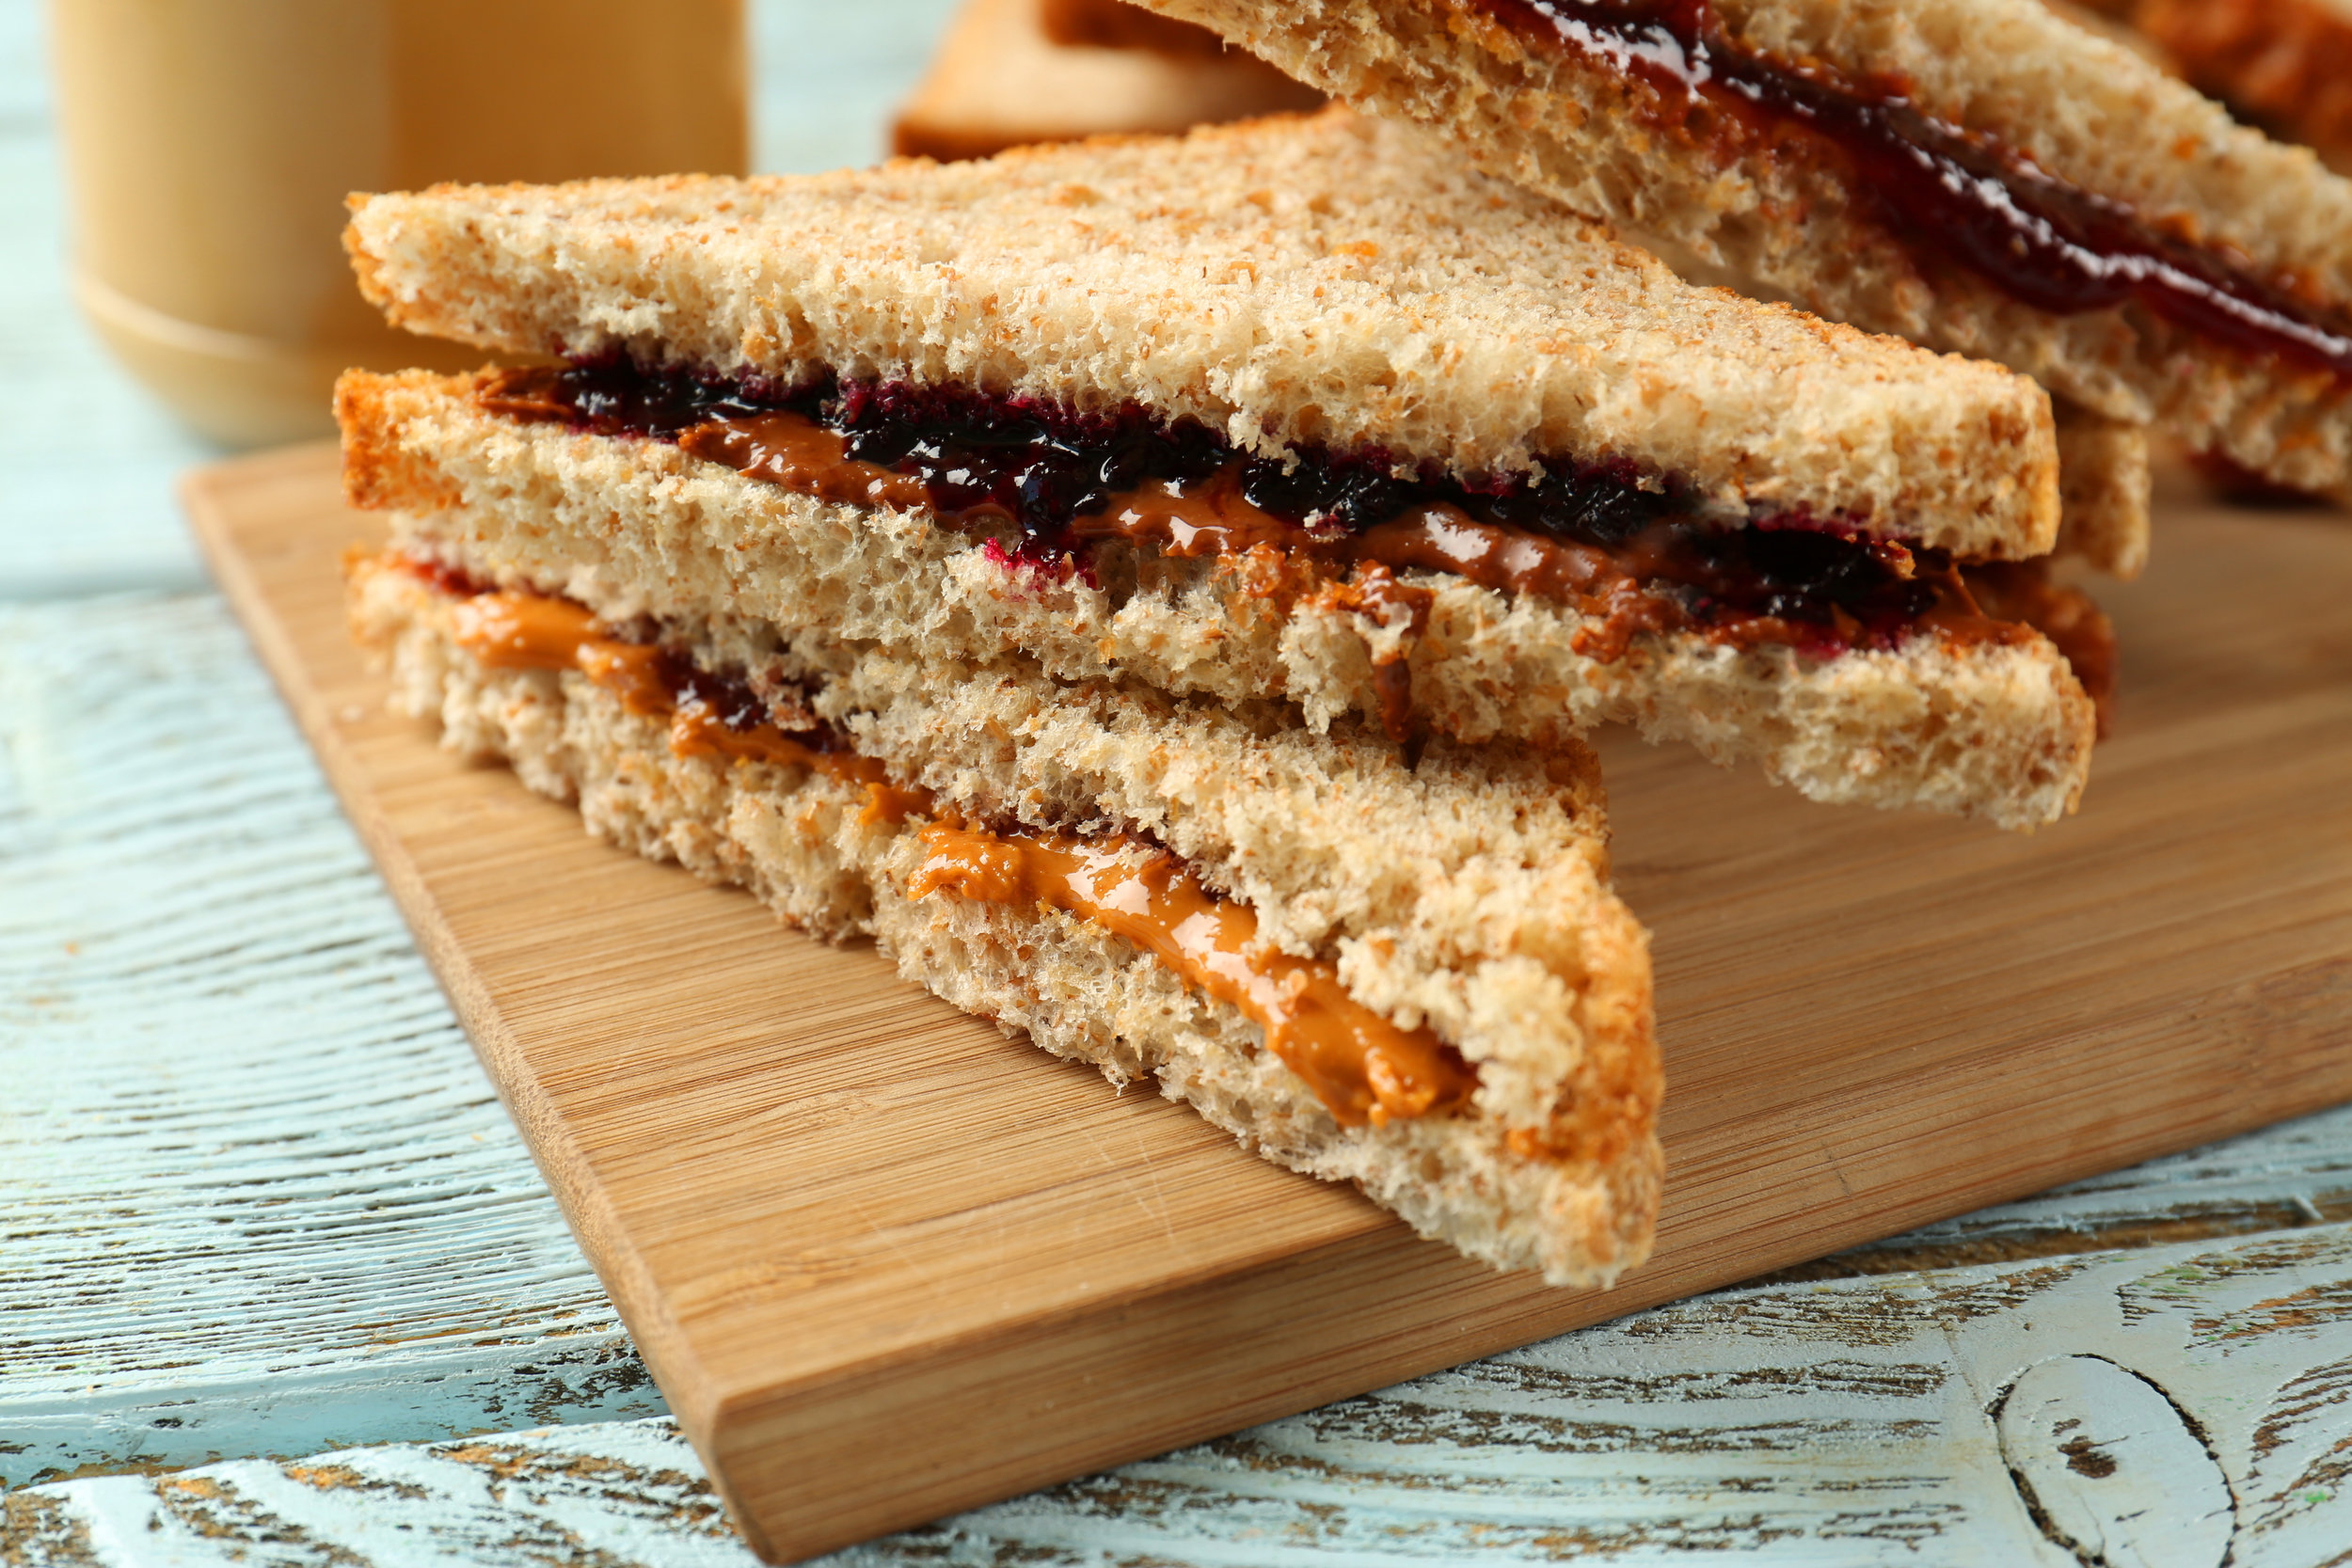 IMG=PB&J?   It's a funny way of telling our story   Check it out